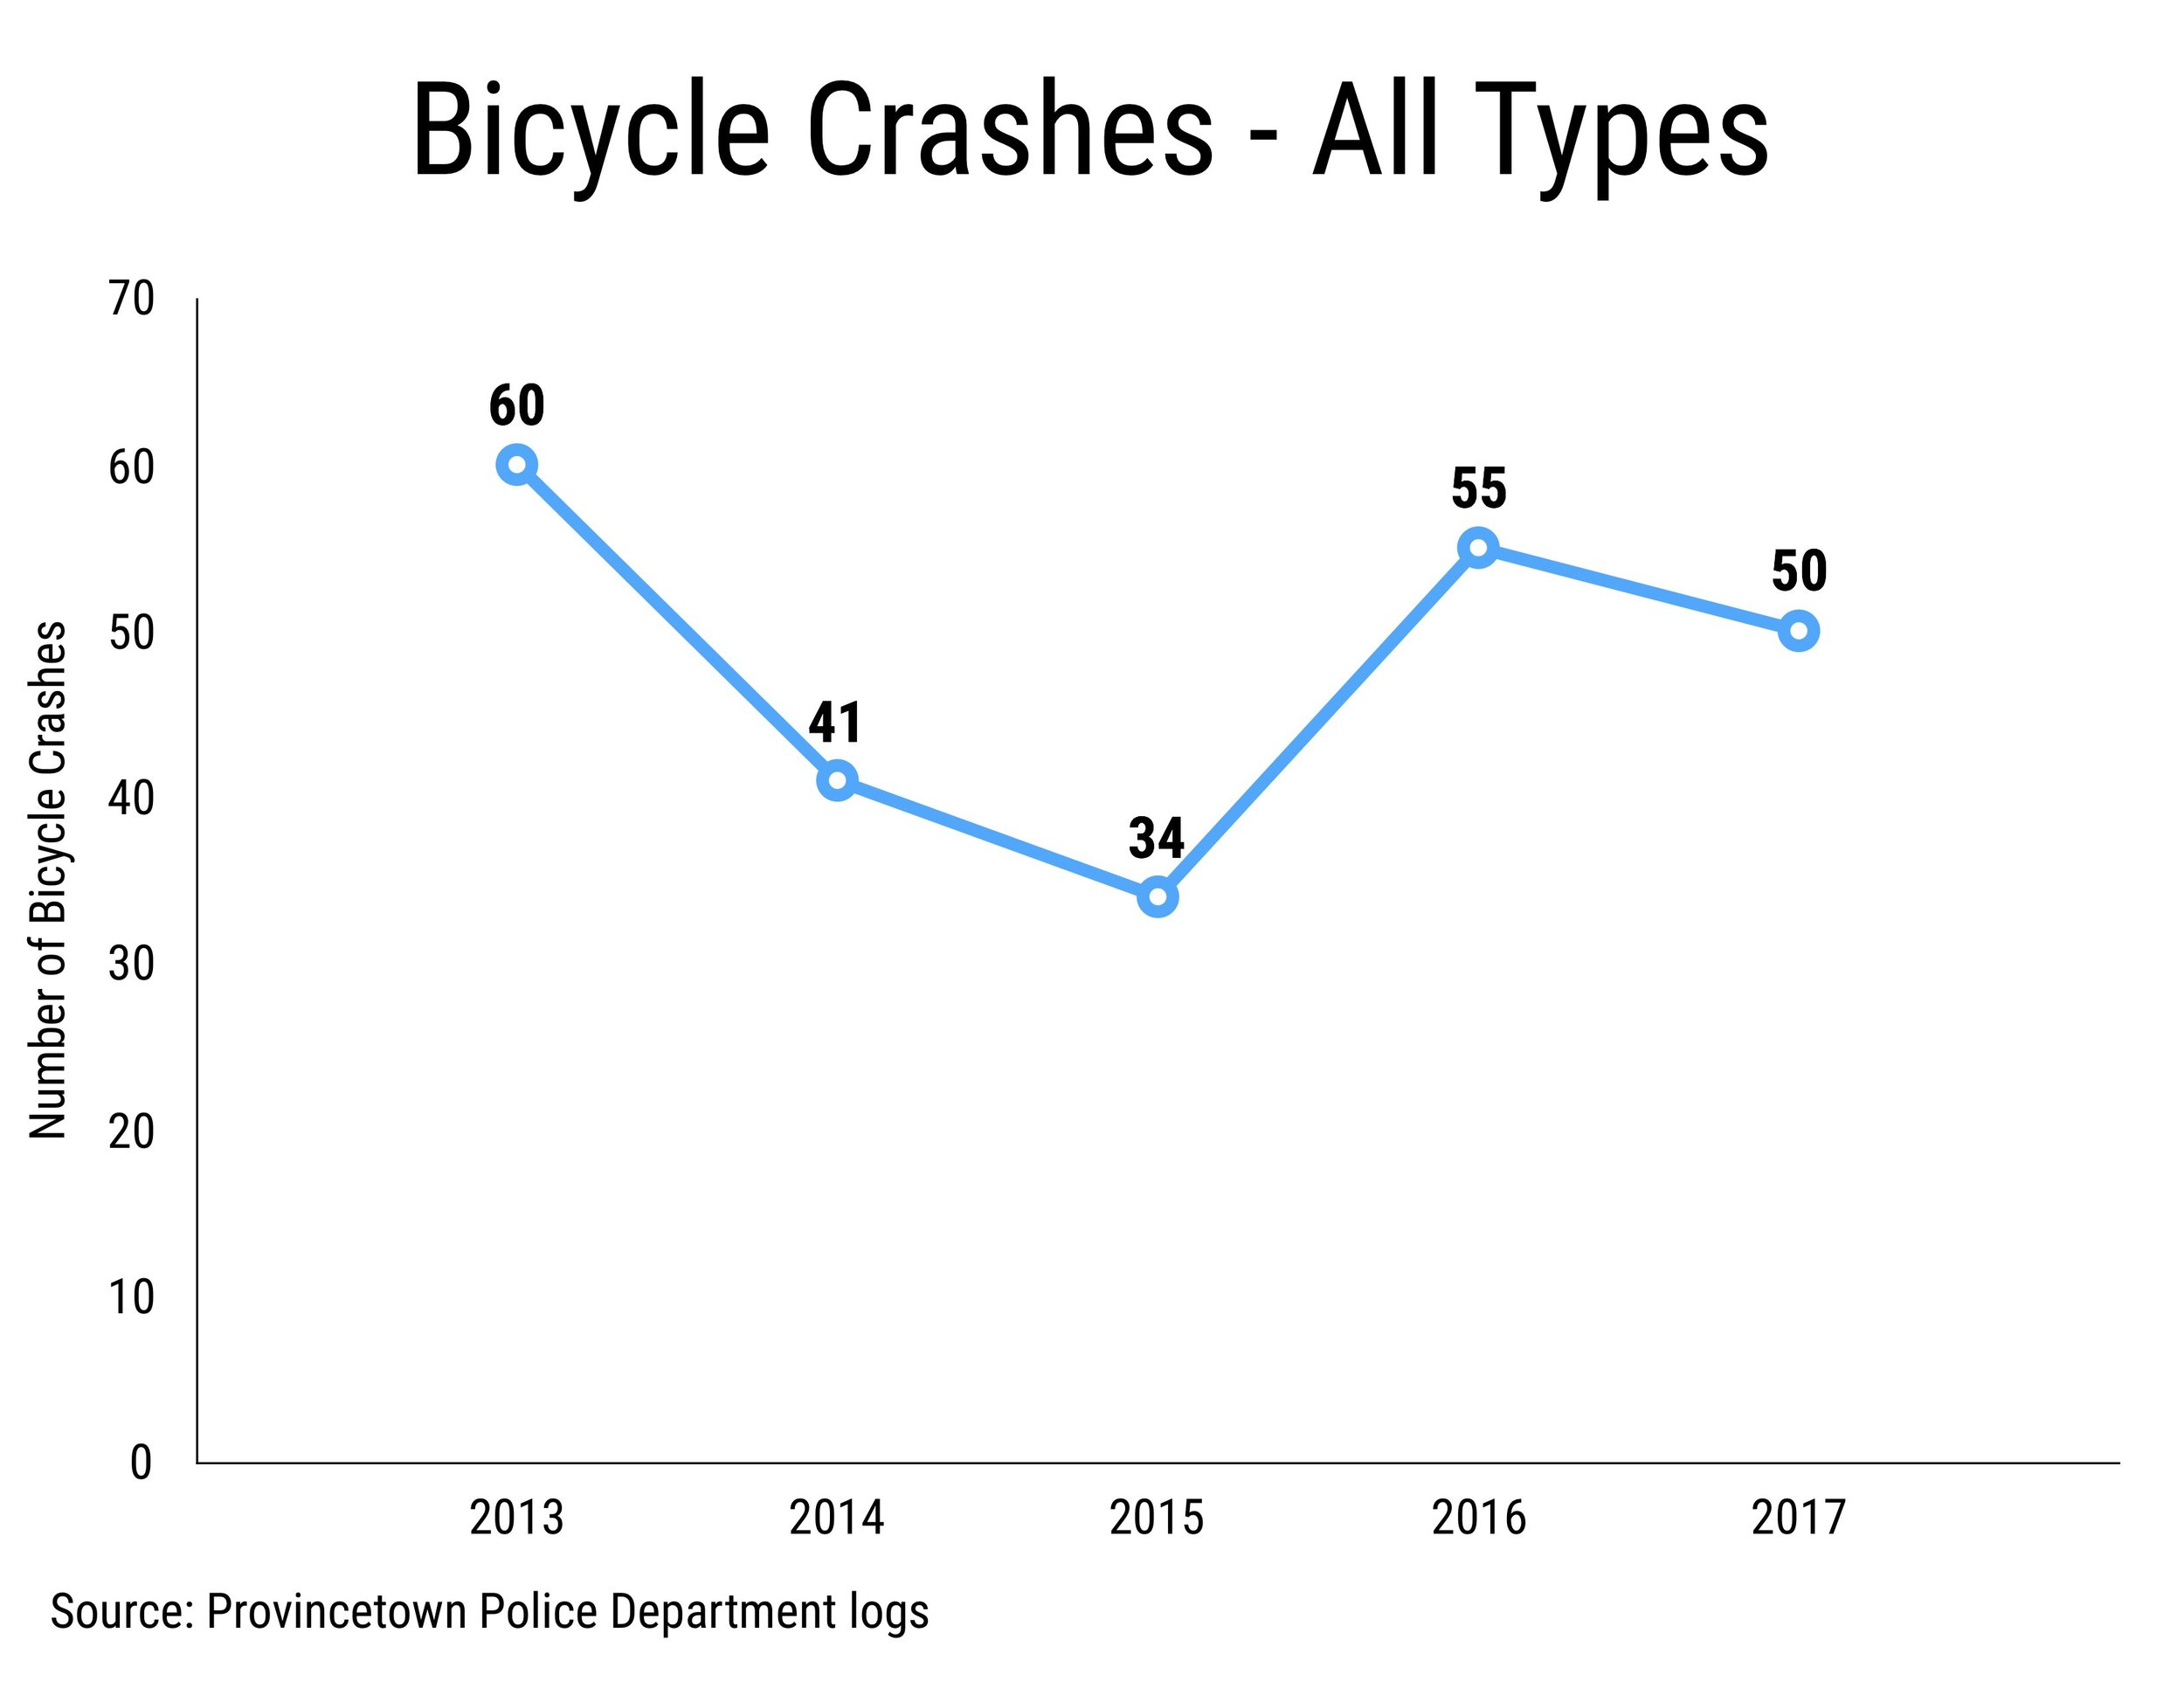 Provincetown Bike Crashes - All Types (2013-2017)